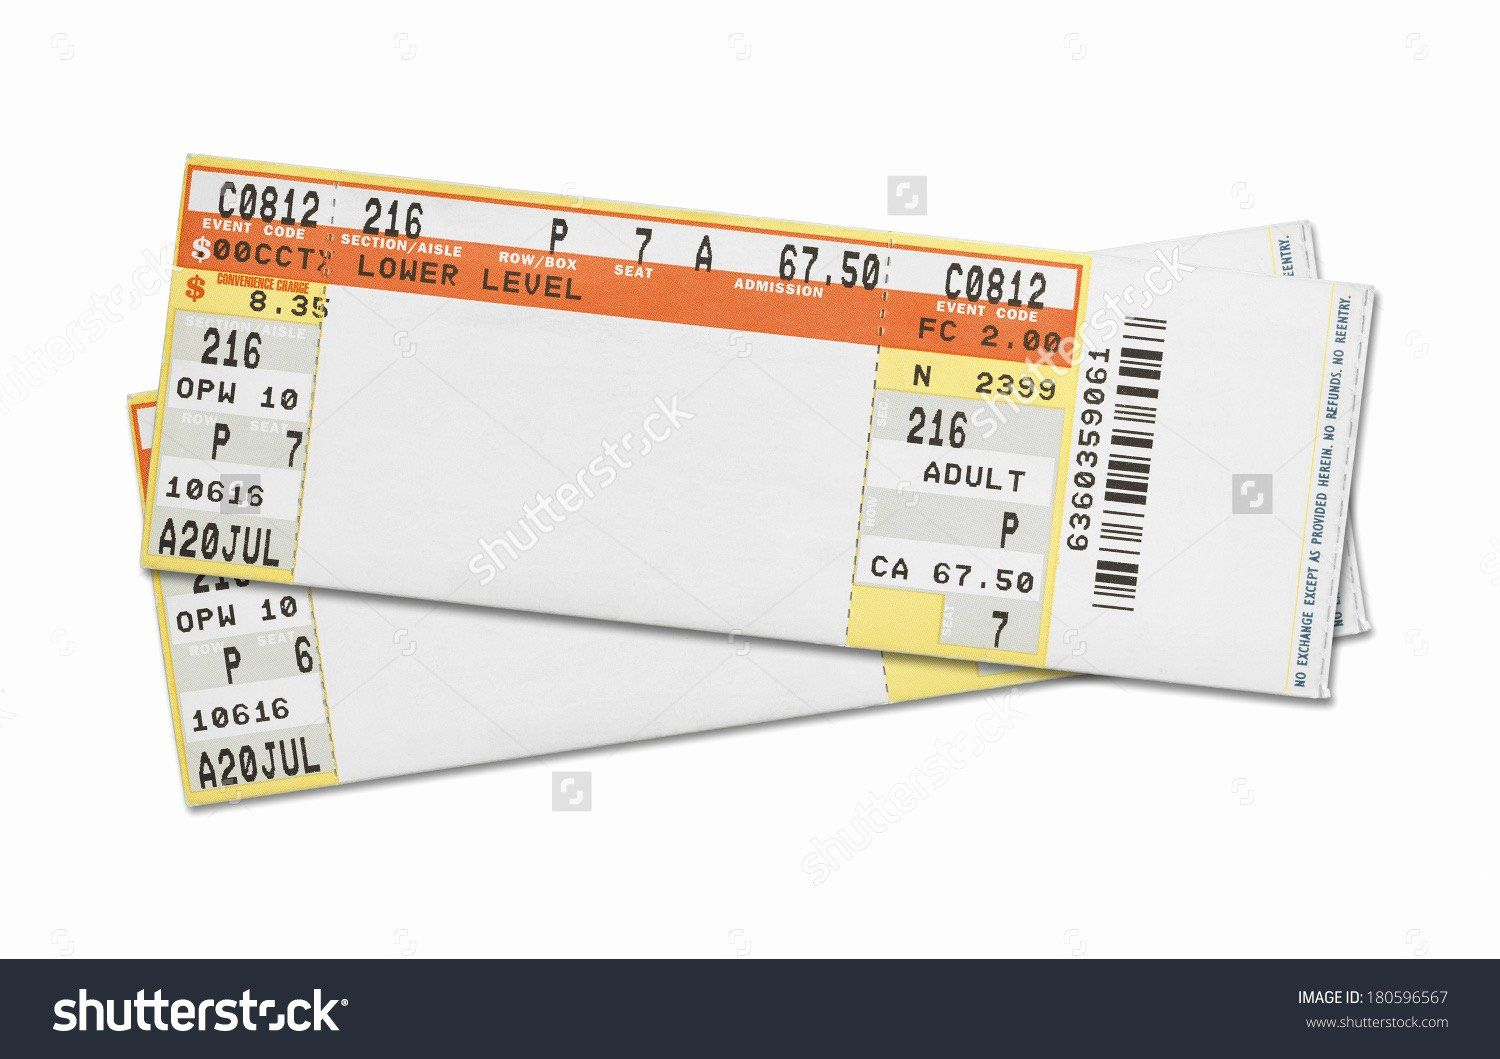 004 Excellent Free Concert Ticket Template Printable High Resolution  GiftFull